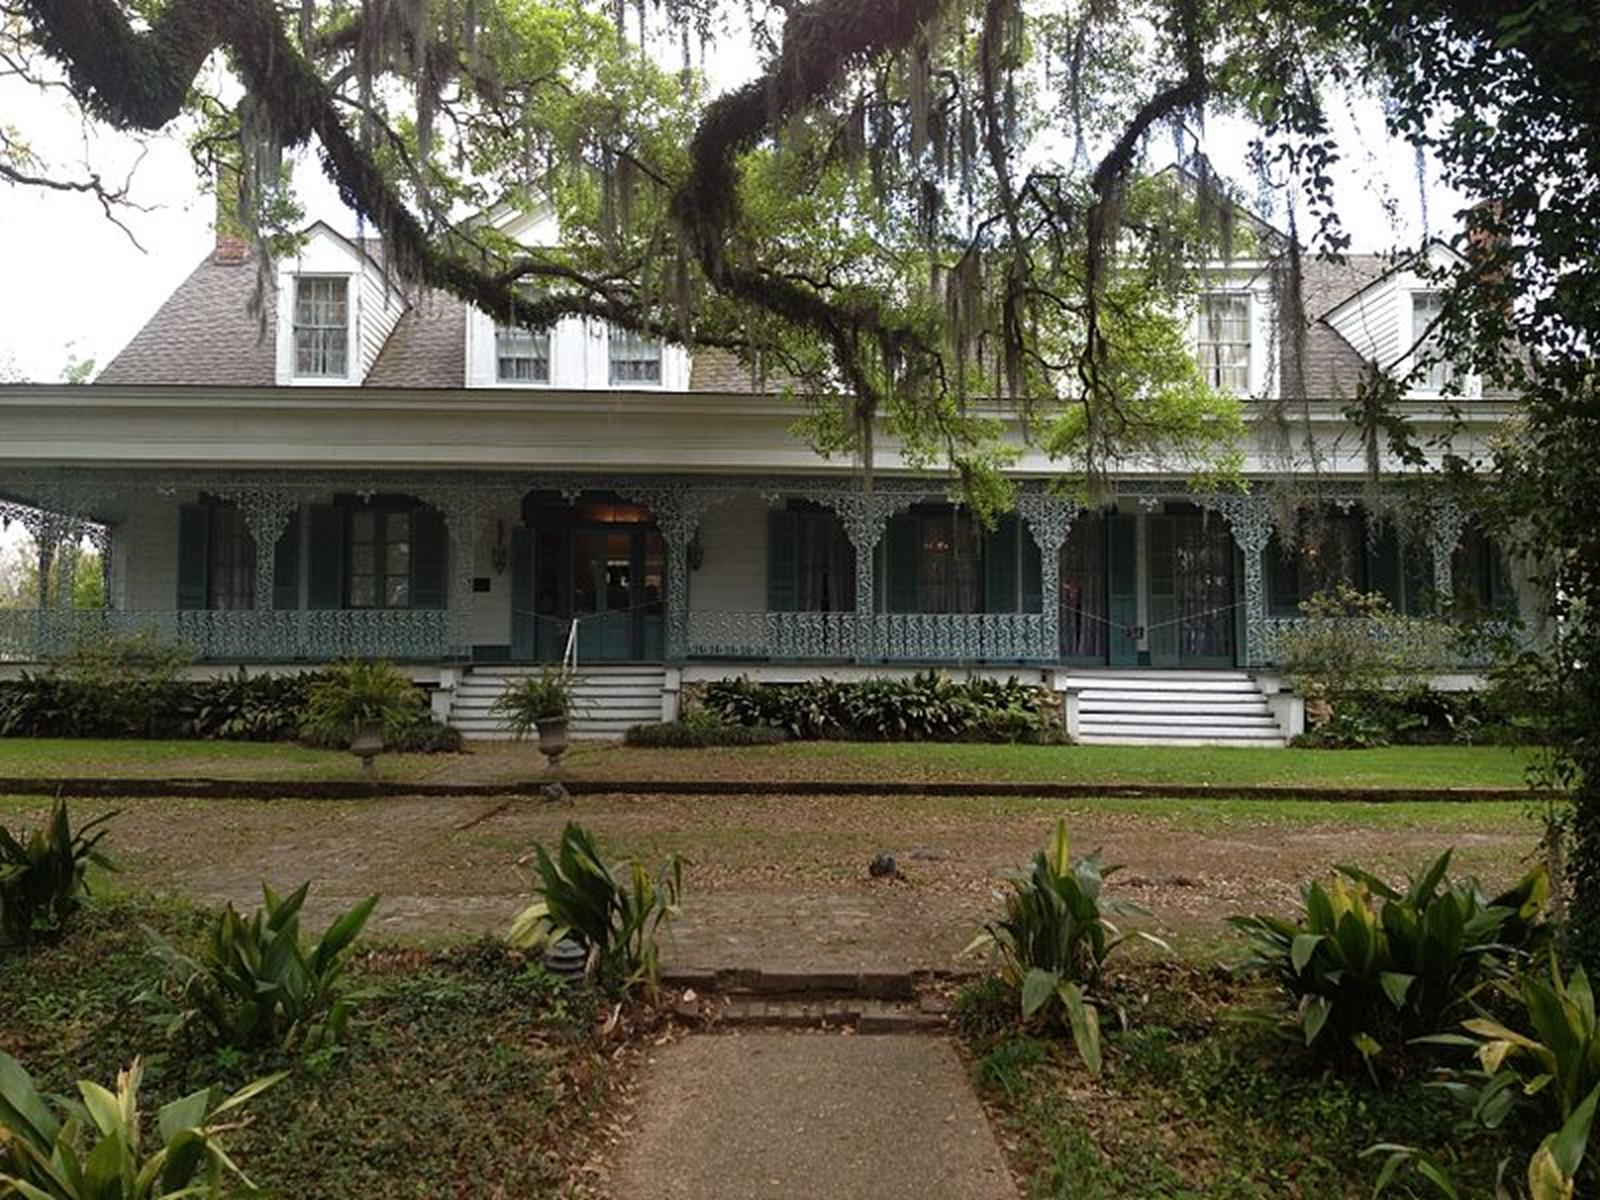 A Front View of the Myrtles Plantation. Credit: Cking81